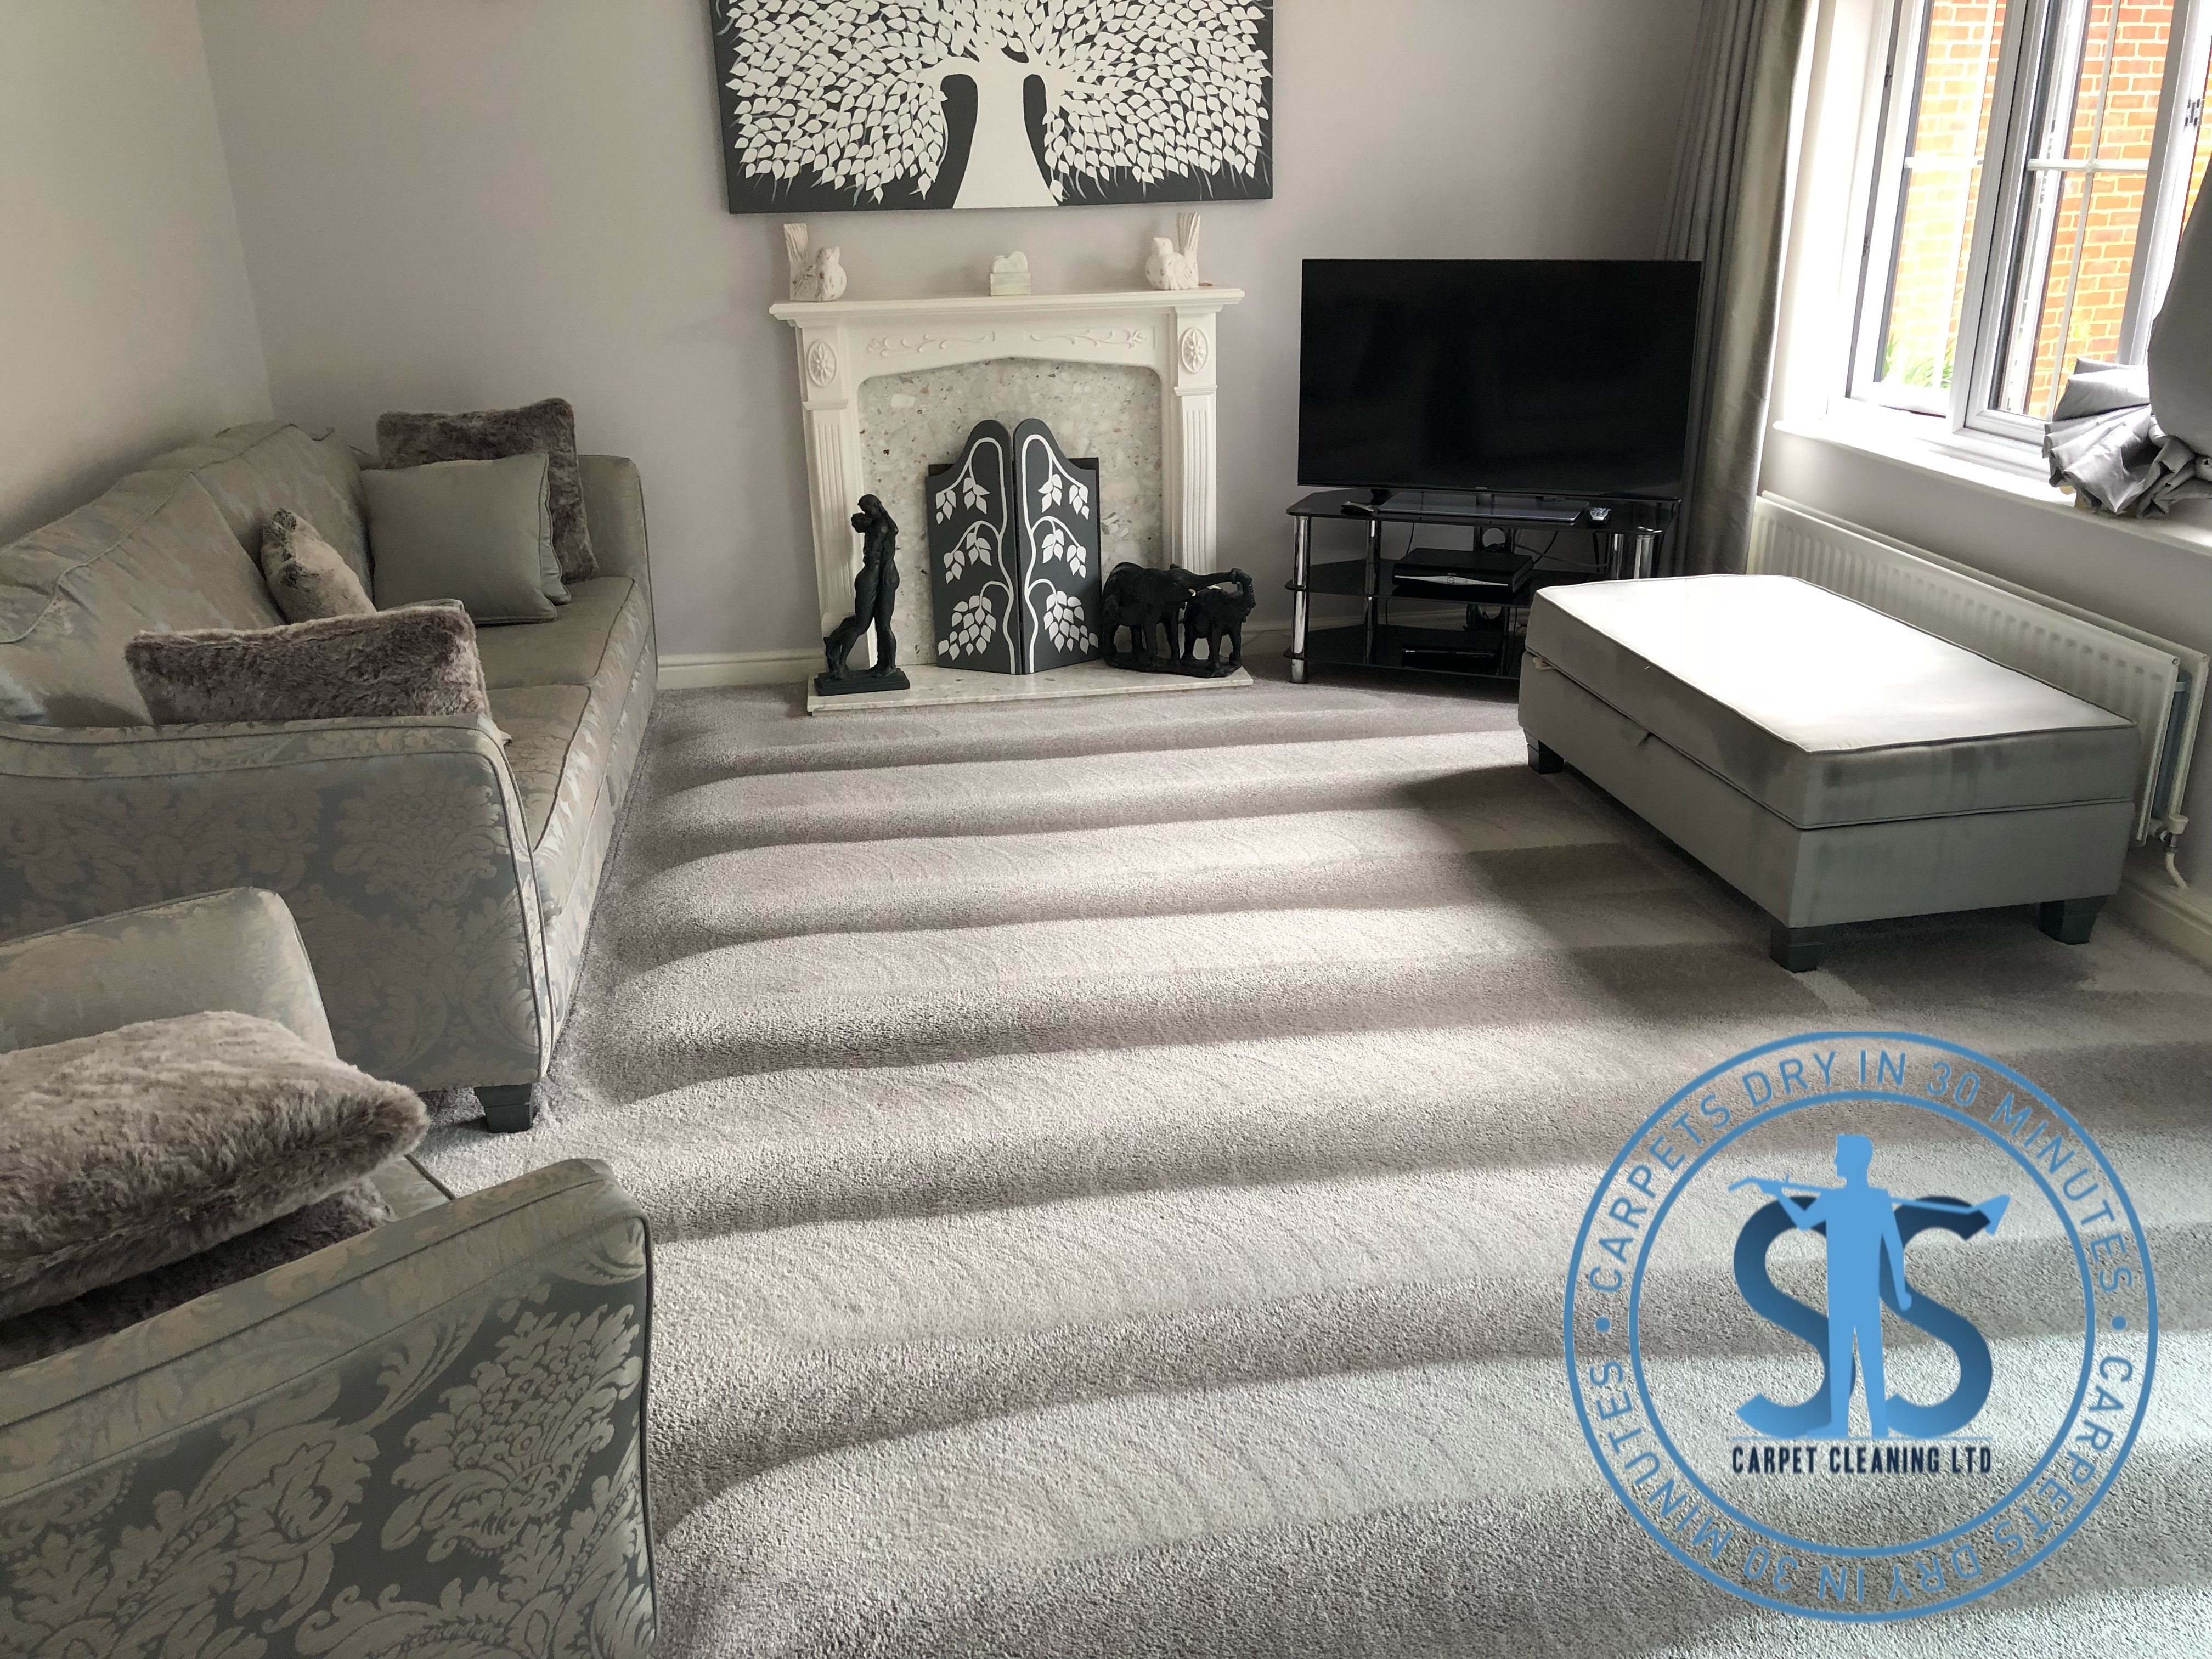 SS Carpet Cleaning